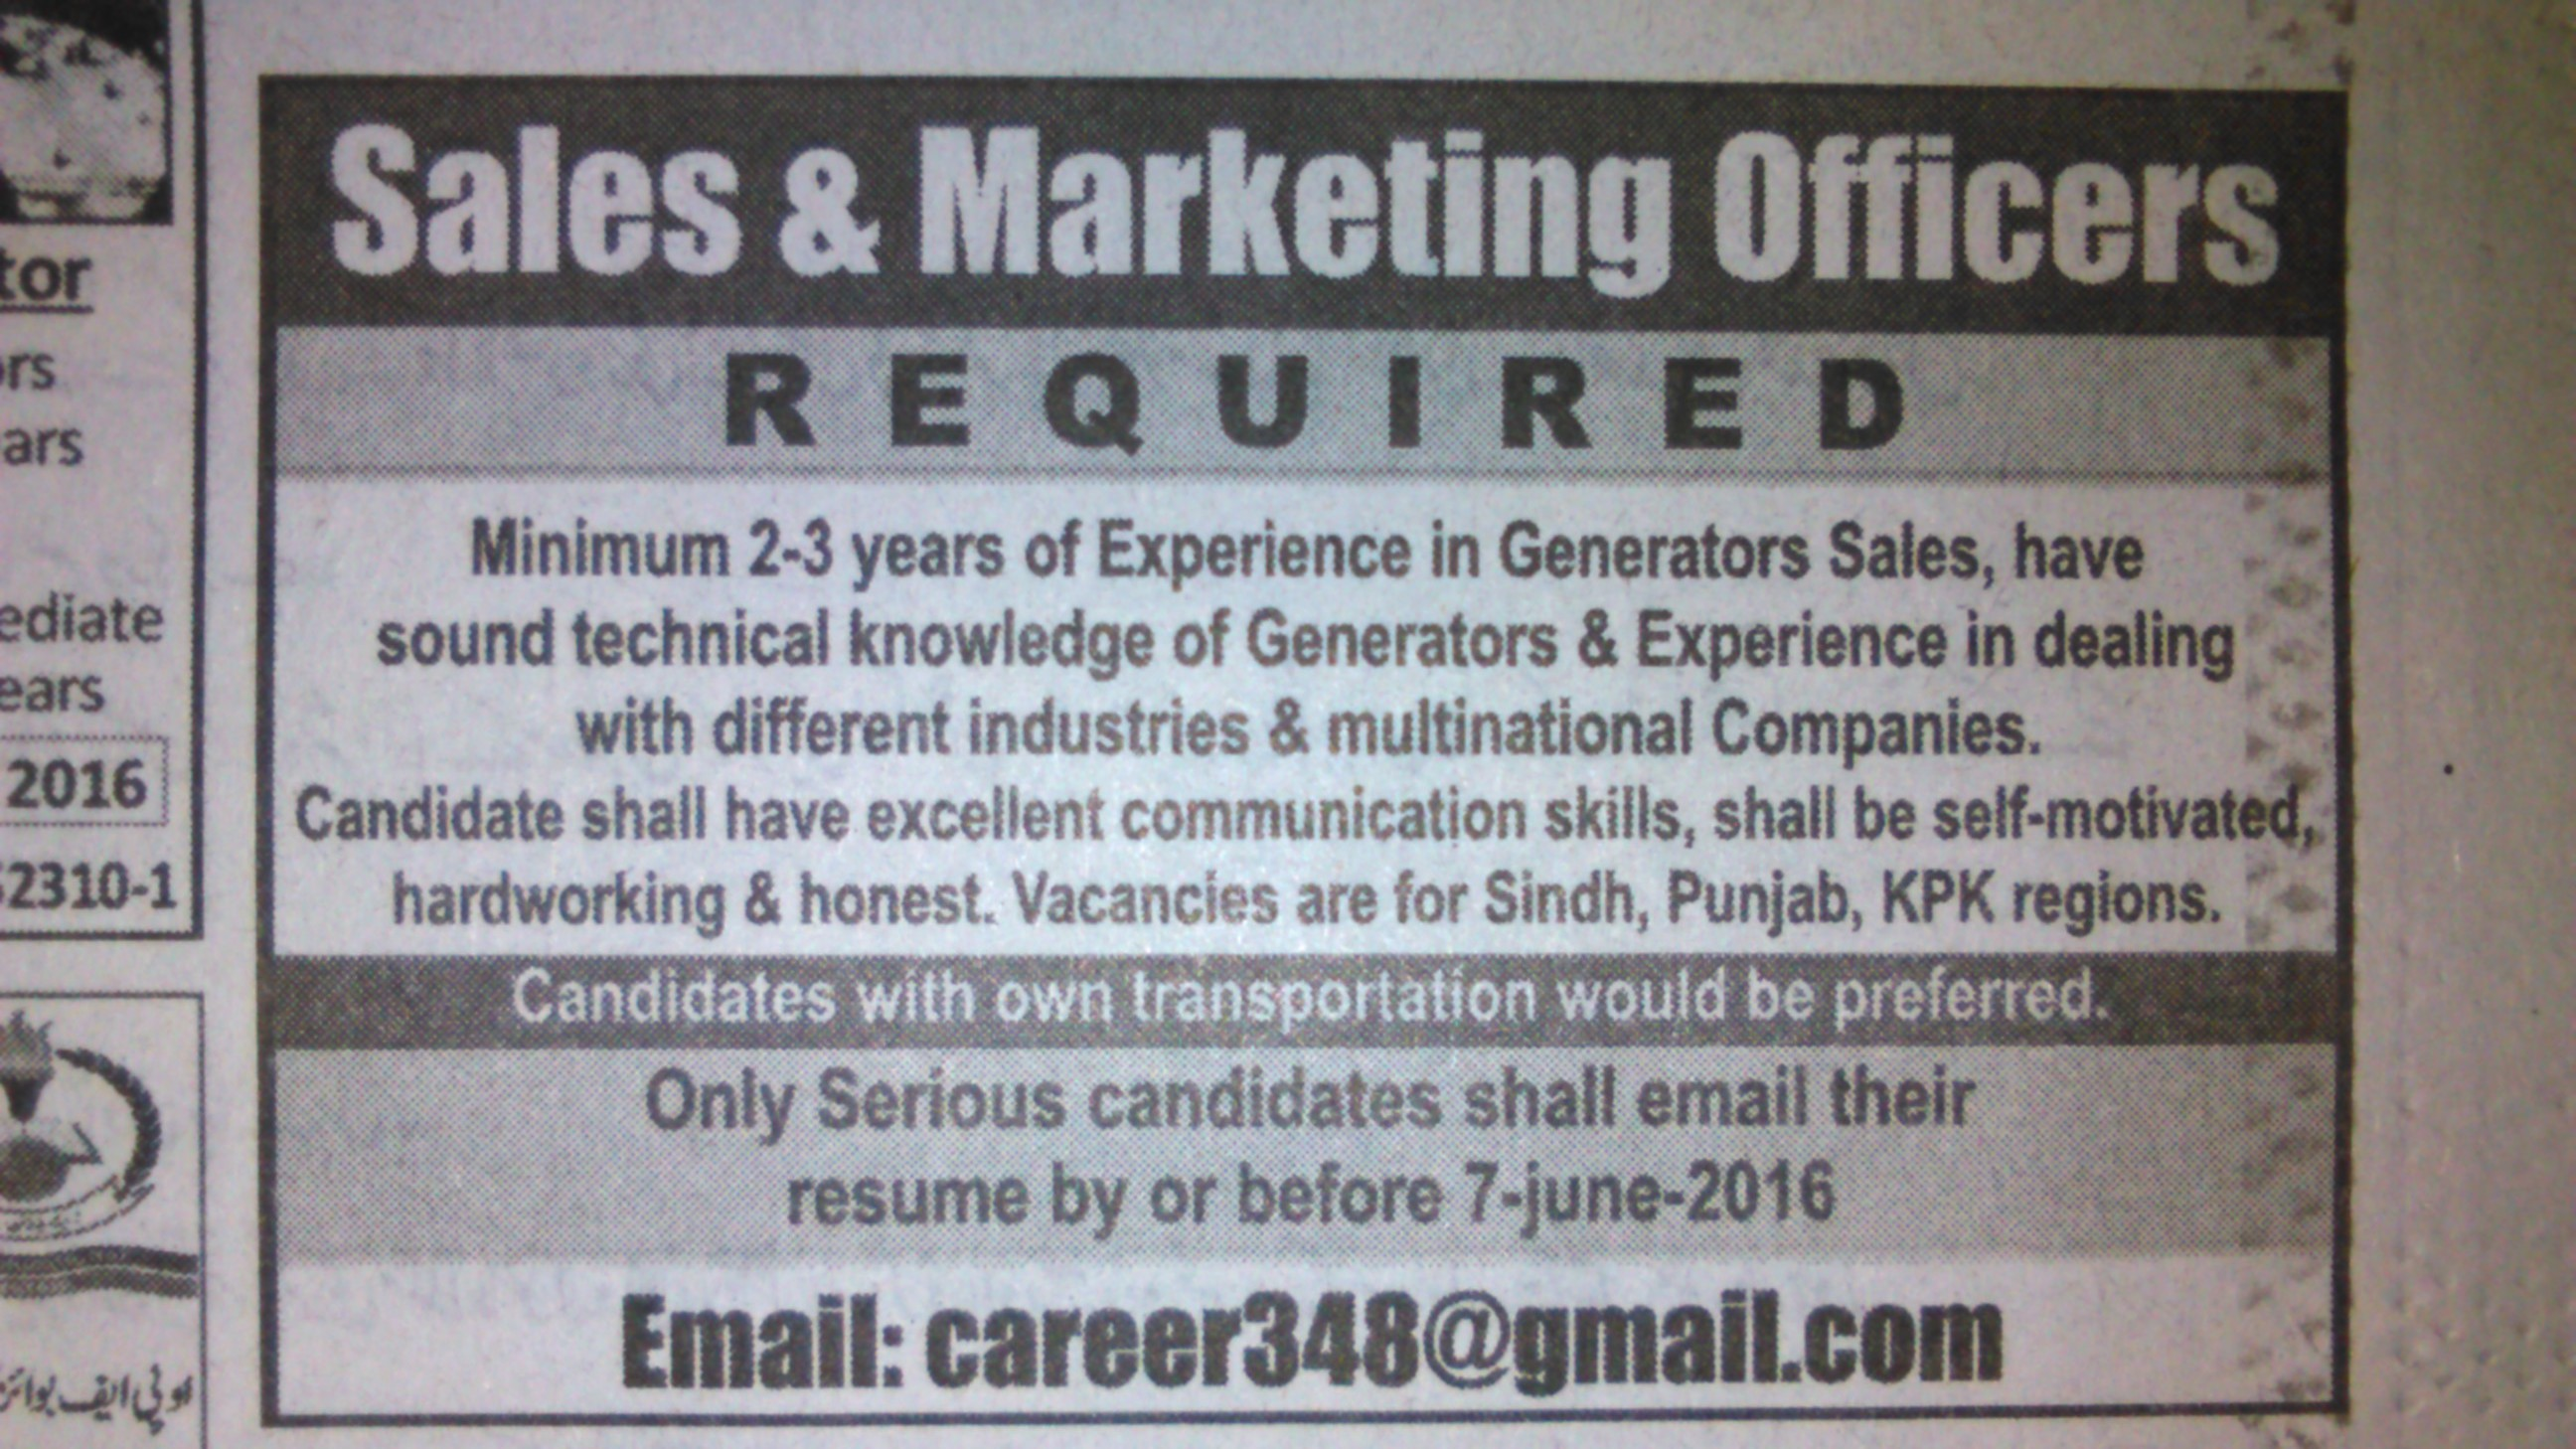 Sales and Marketting Officers Required